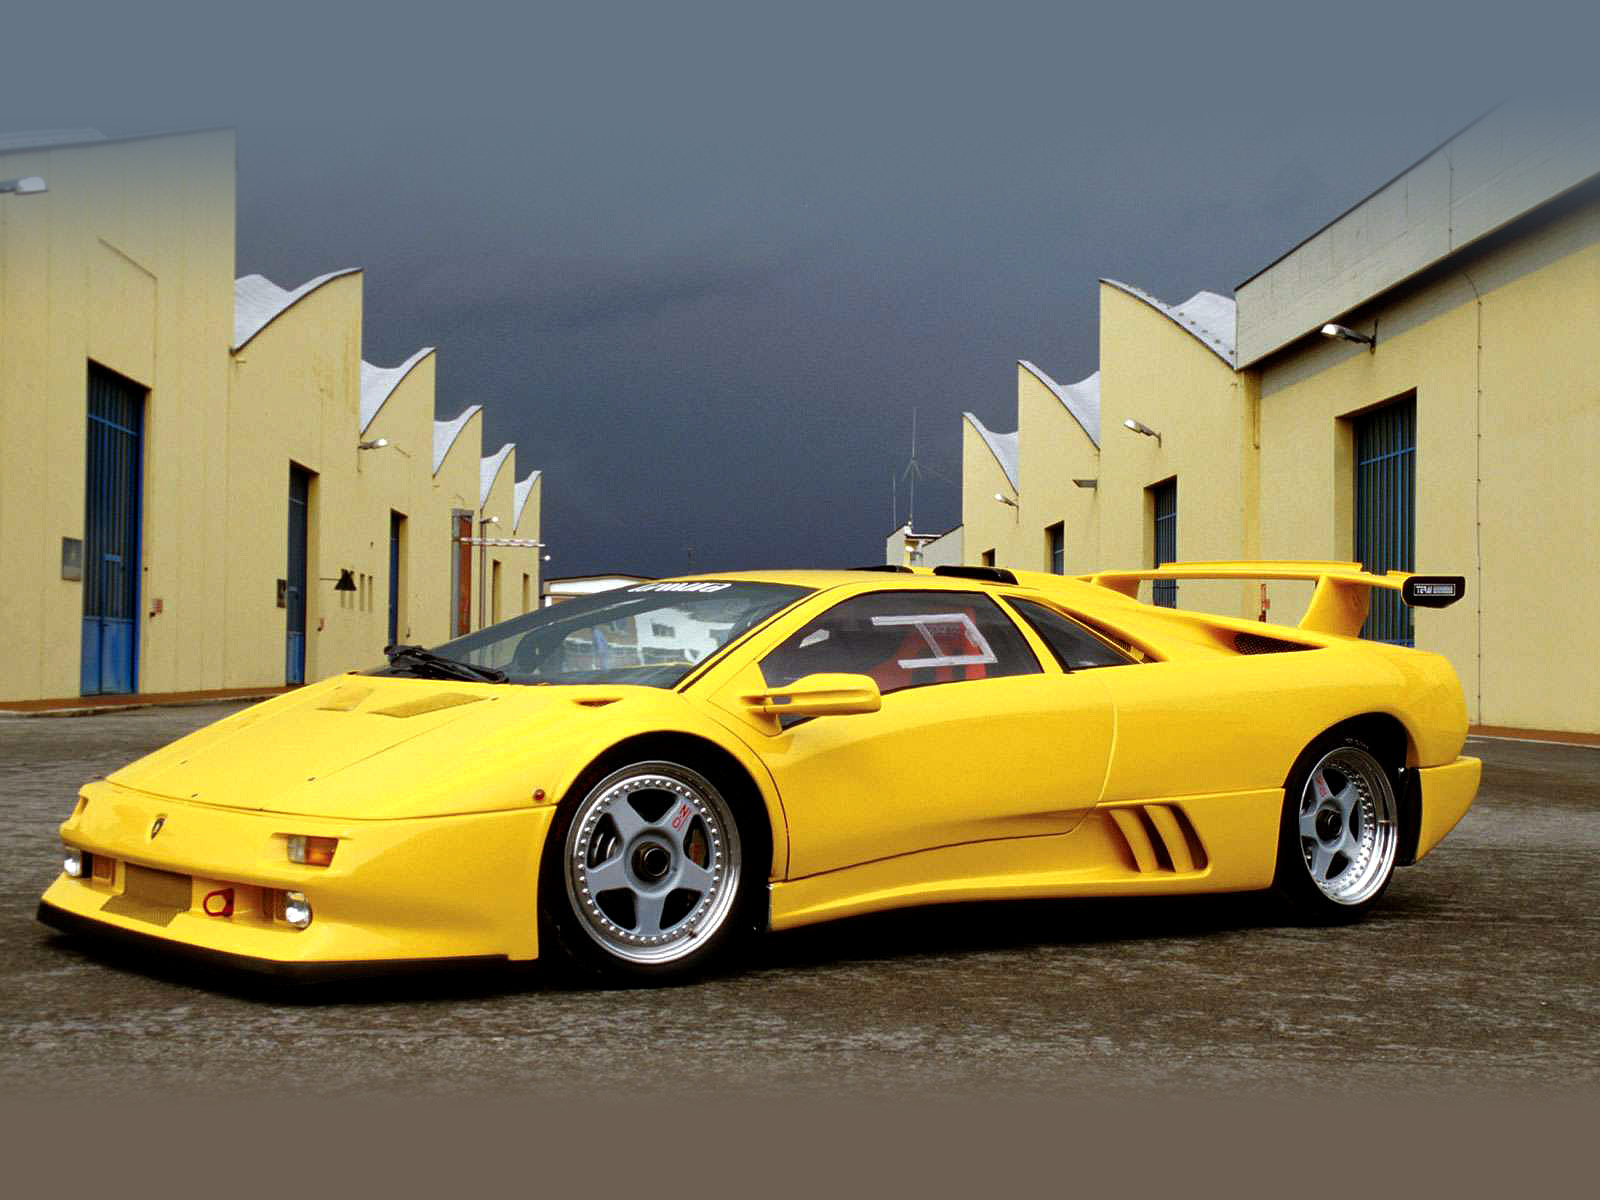 Car Accident Lawyers 1995 Lamborghini Diablo Iota